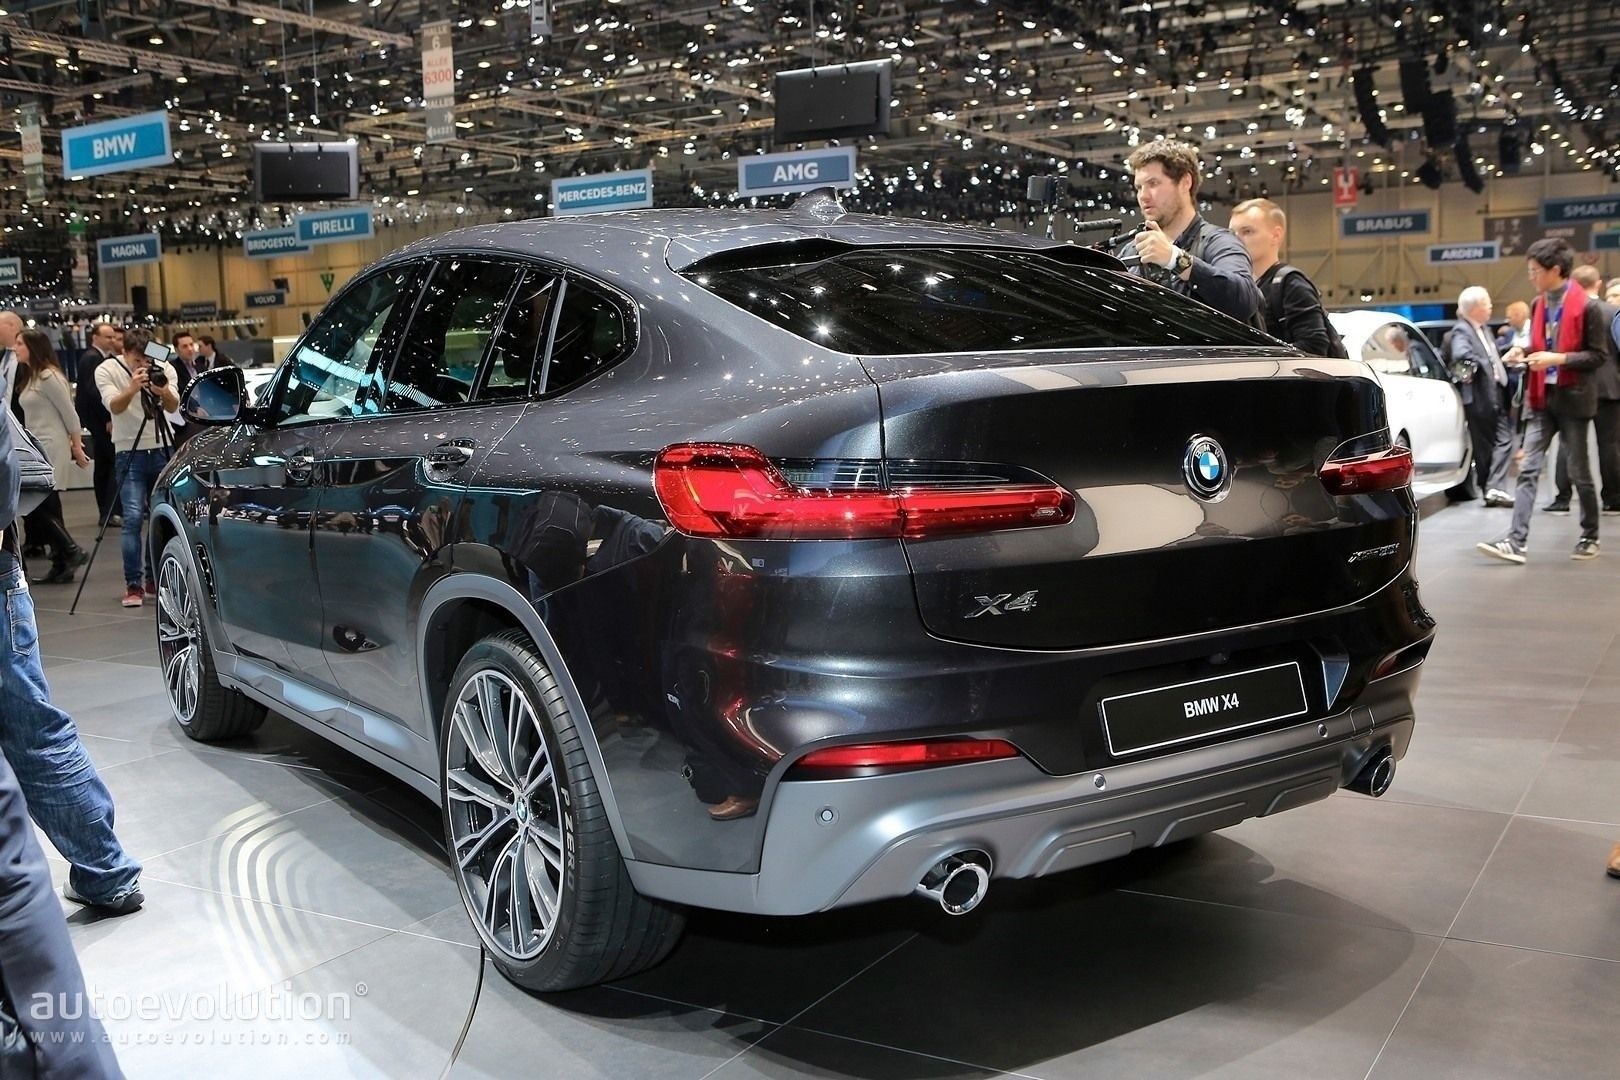 2019 Bmw X6 Review Specs And Release Date Redesign Price And Review Concept Redesign And Review Release Date Price And Review Picture Re Bmw X6 Bmw Car